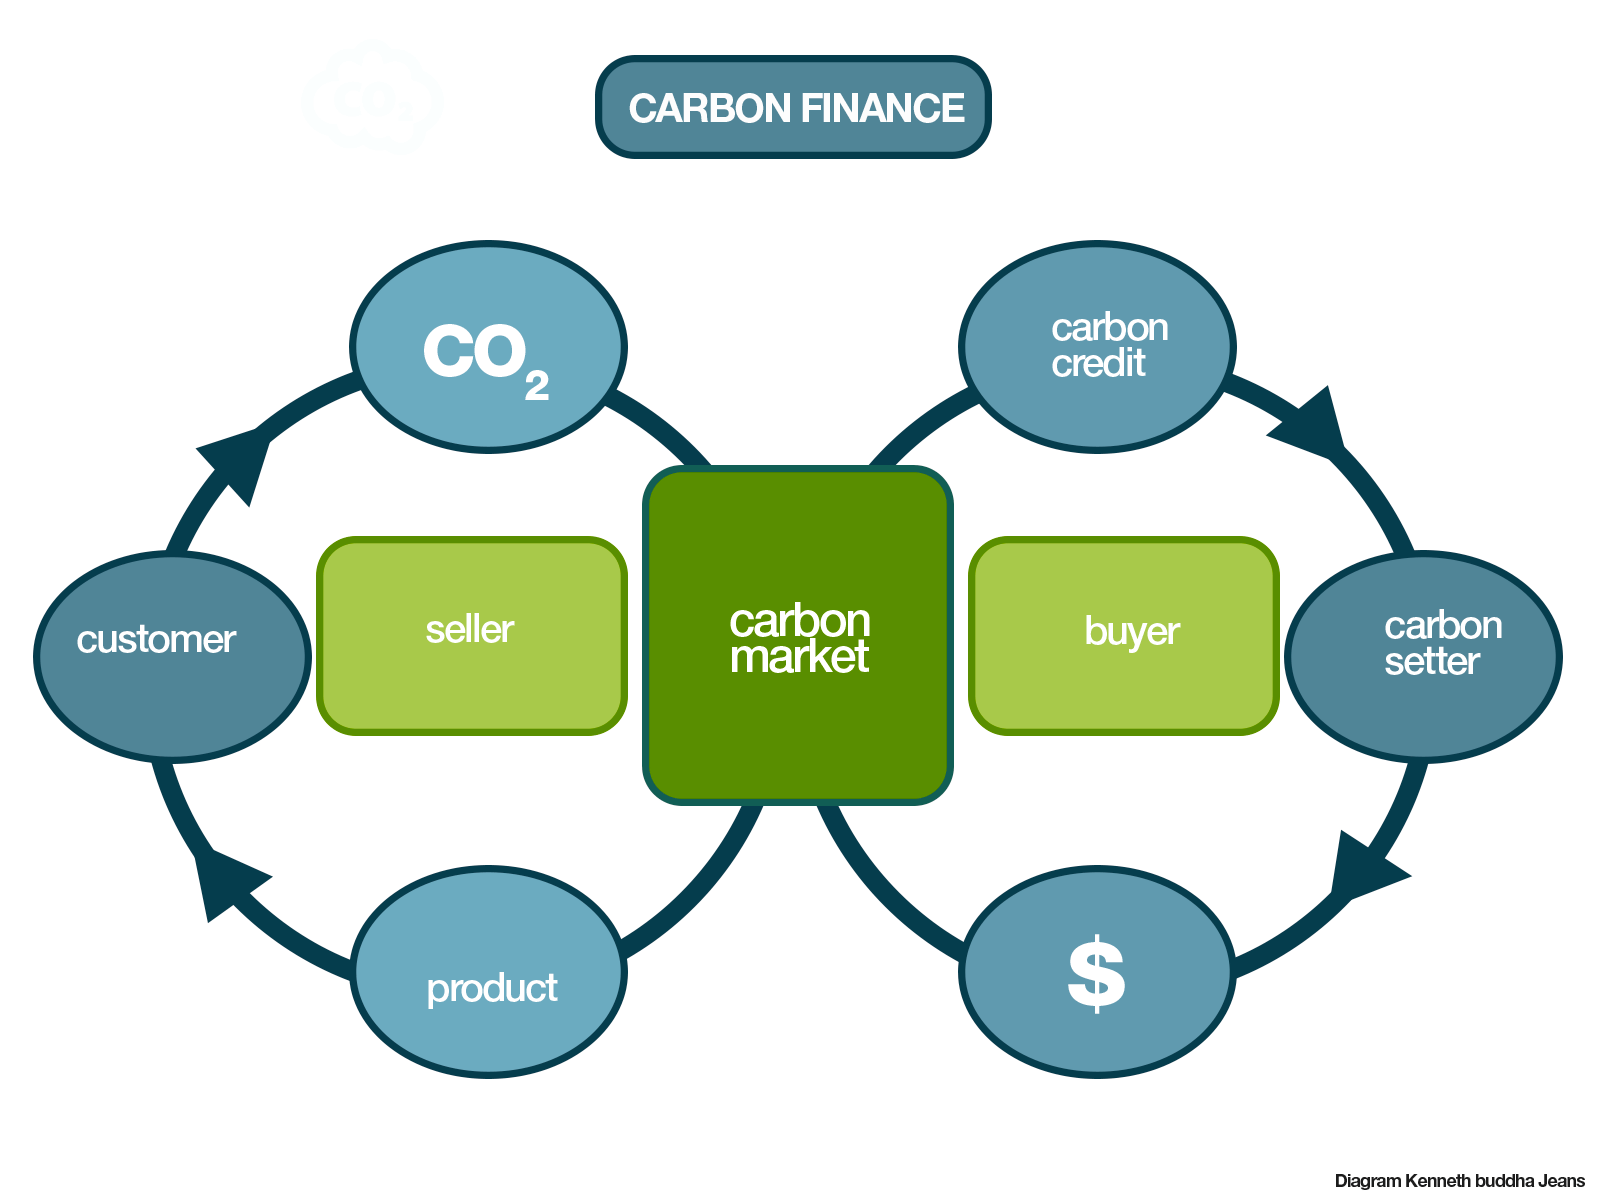 hight resolution of eco fashion dictionary carbon finance diagram graphics kenneth buddha jeans